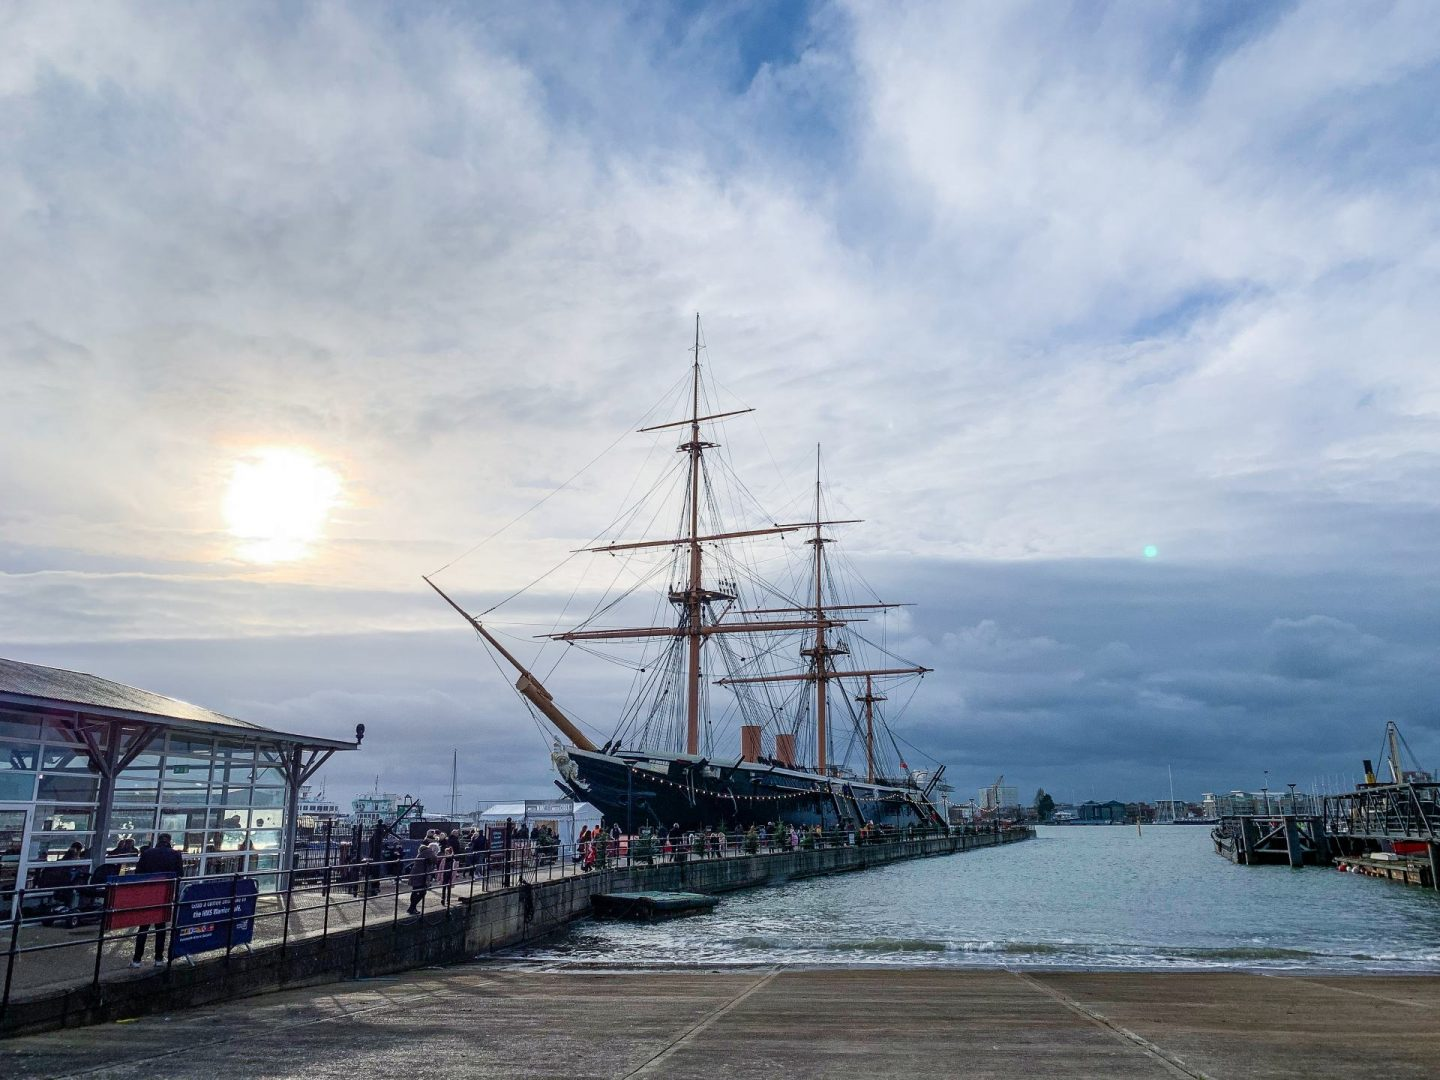 HMS Warrior at Victorian Festival of Christmas at Portsmouth Historic Dockyard